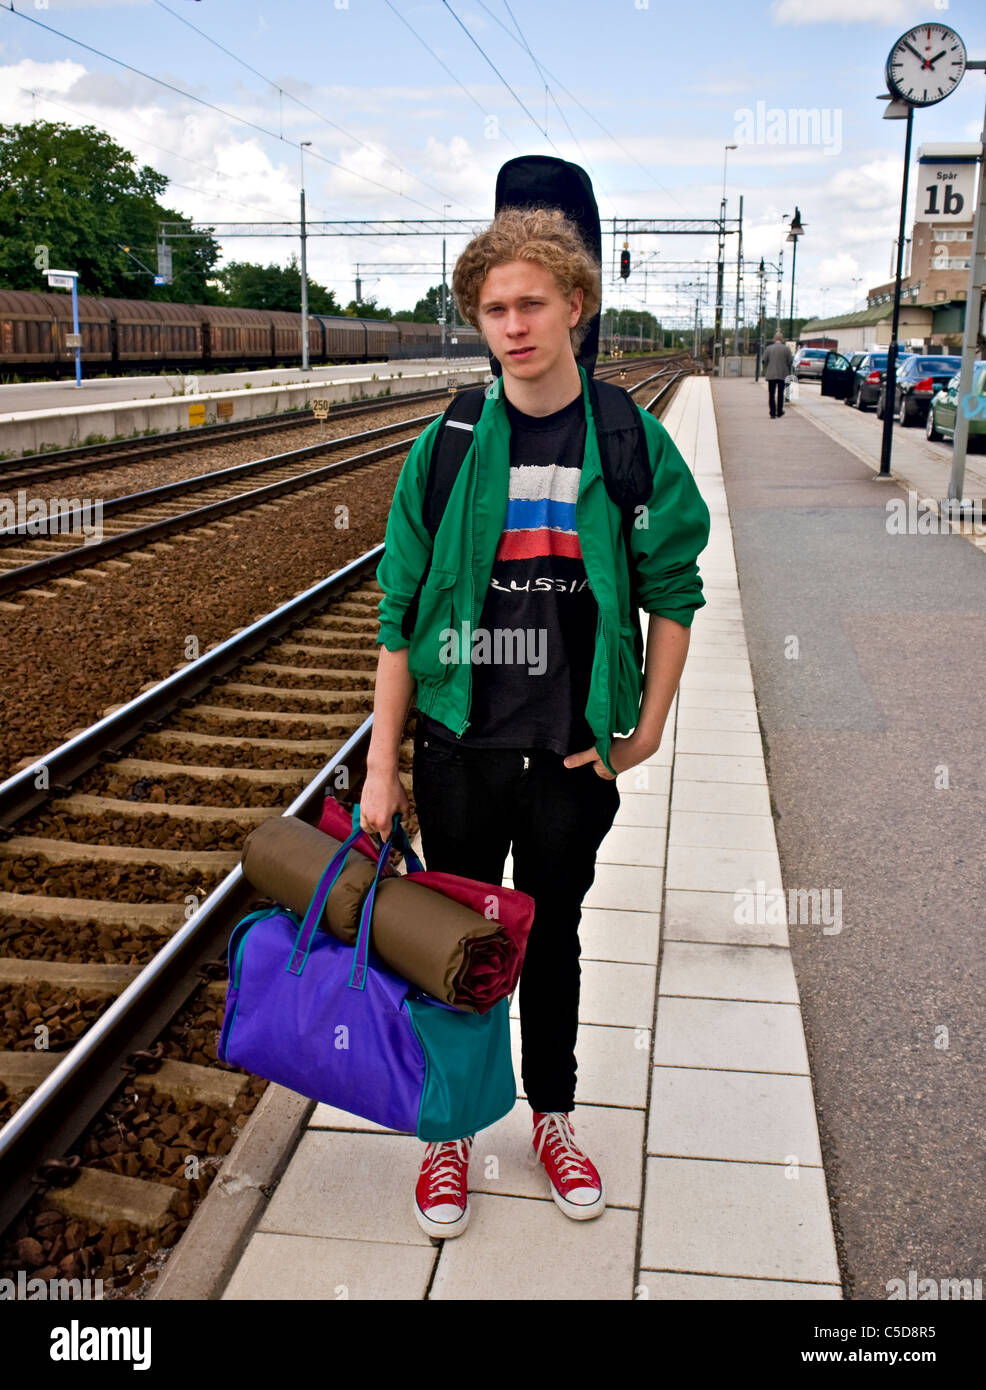 Portrait Of A Young Man With Bag Carrying Guitar Behind His Back At The Railway Station Platform